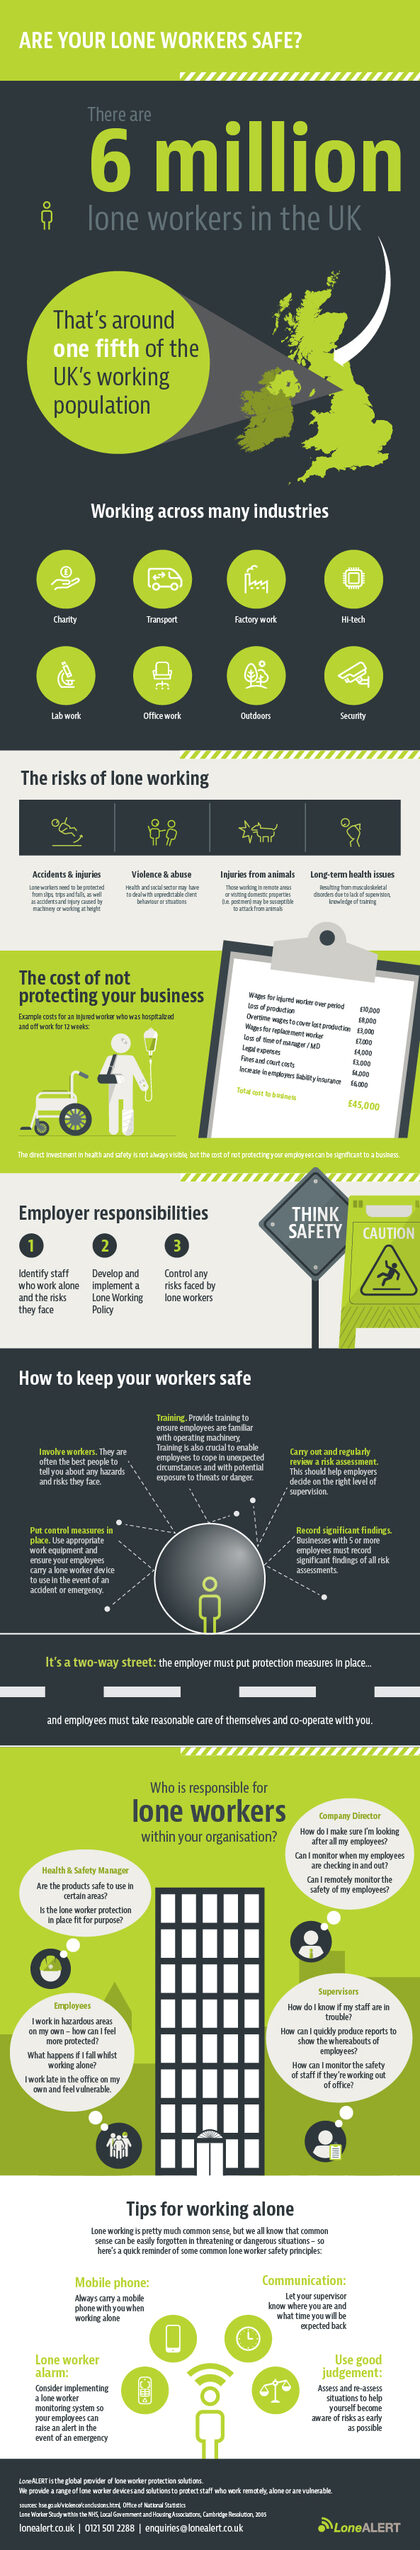 lone working infographic